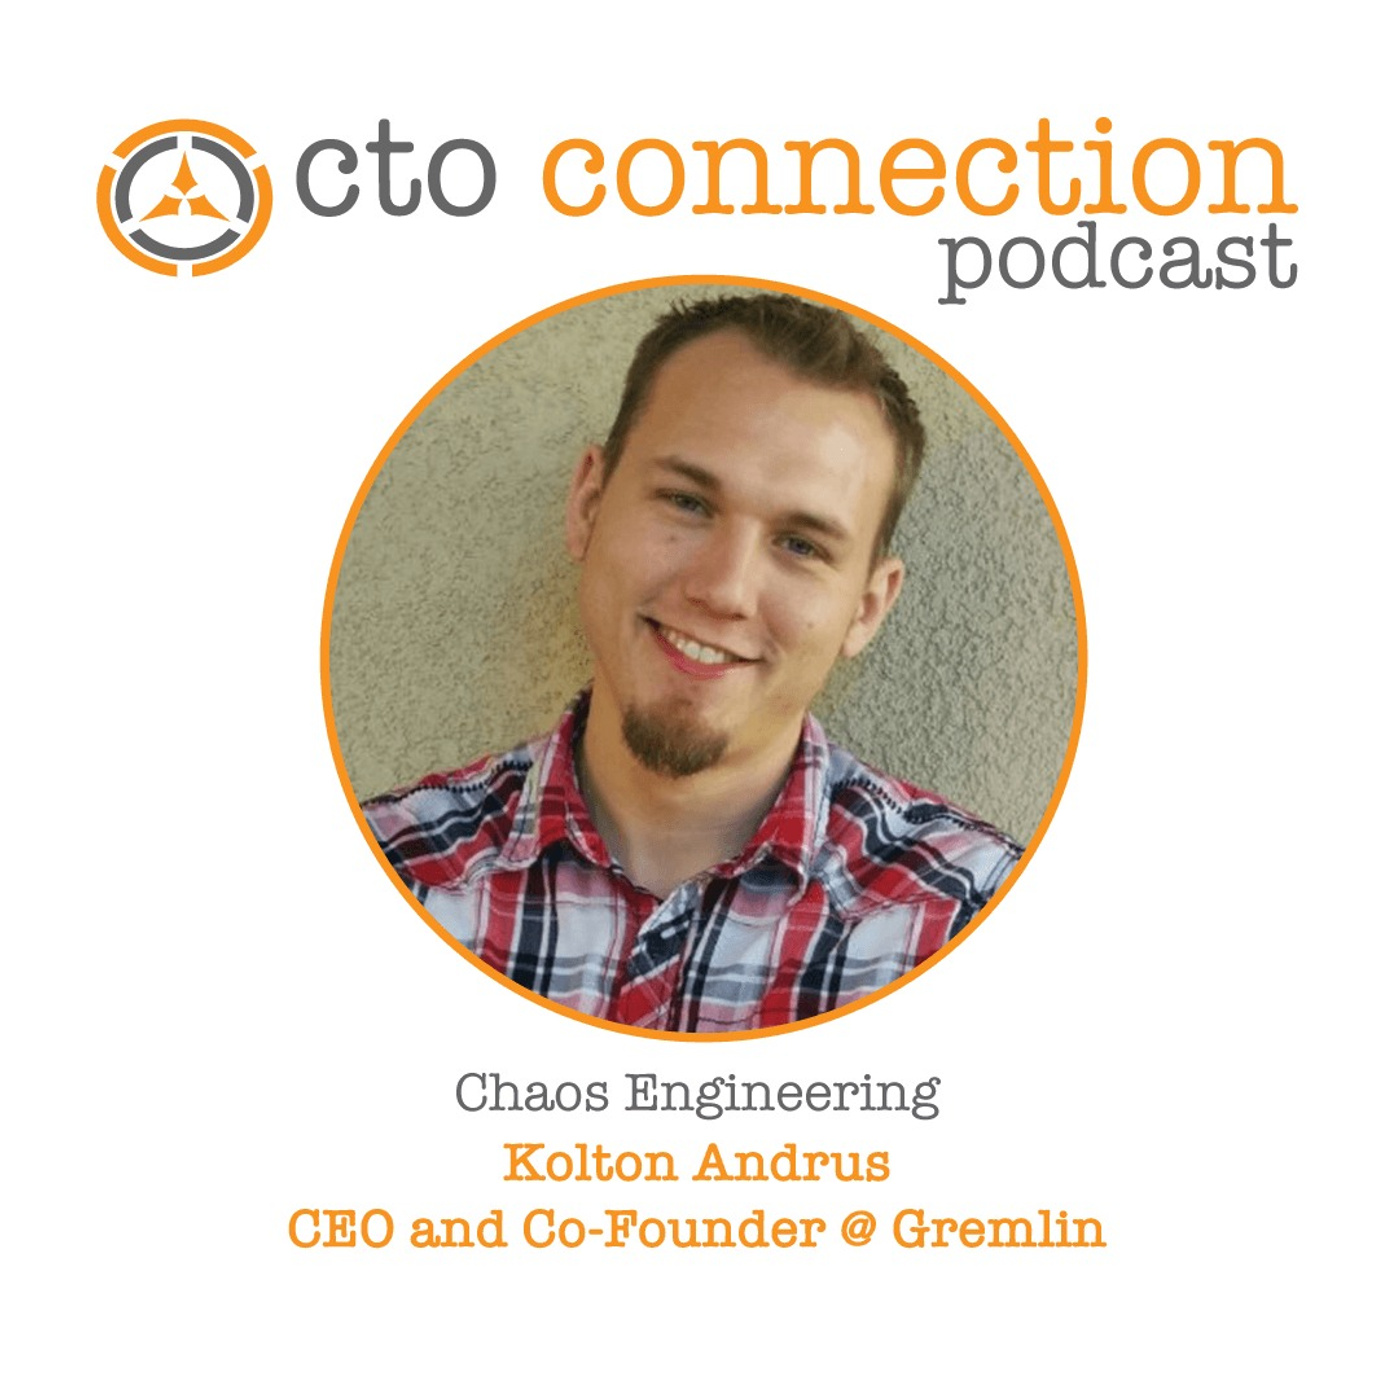 Chaos Engineering with Kolton Andrus